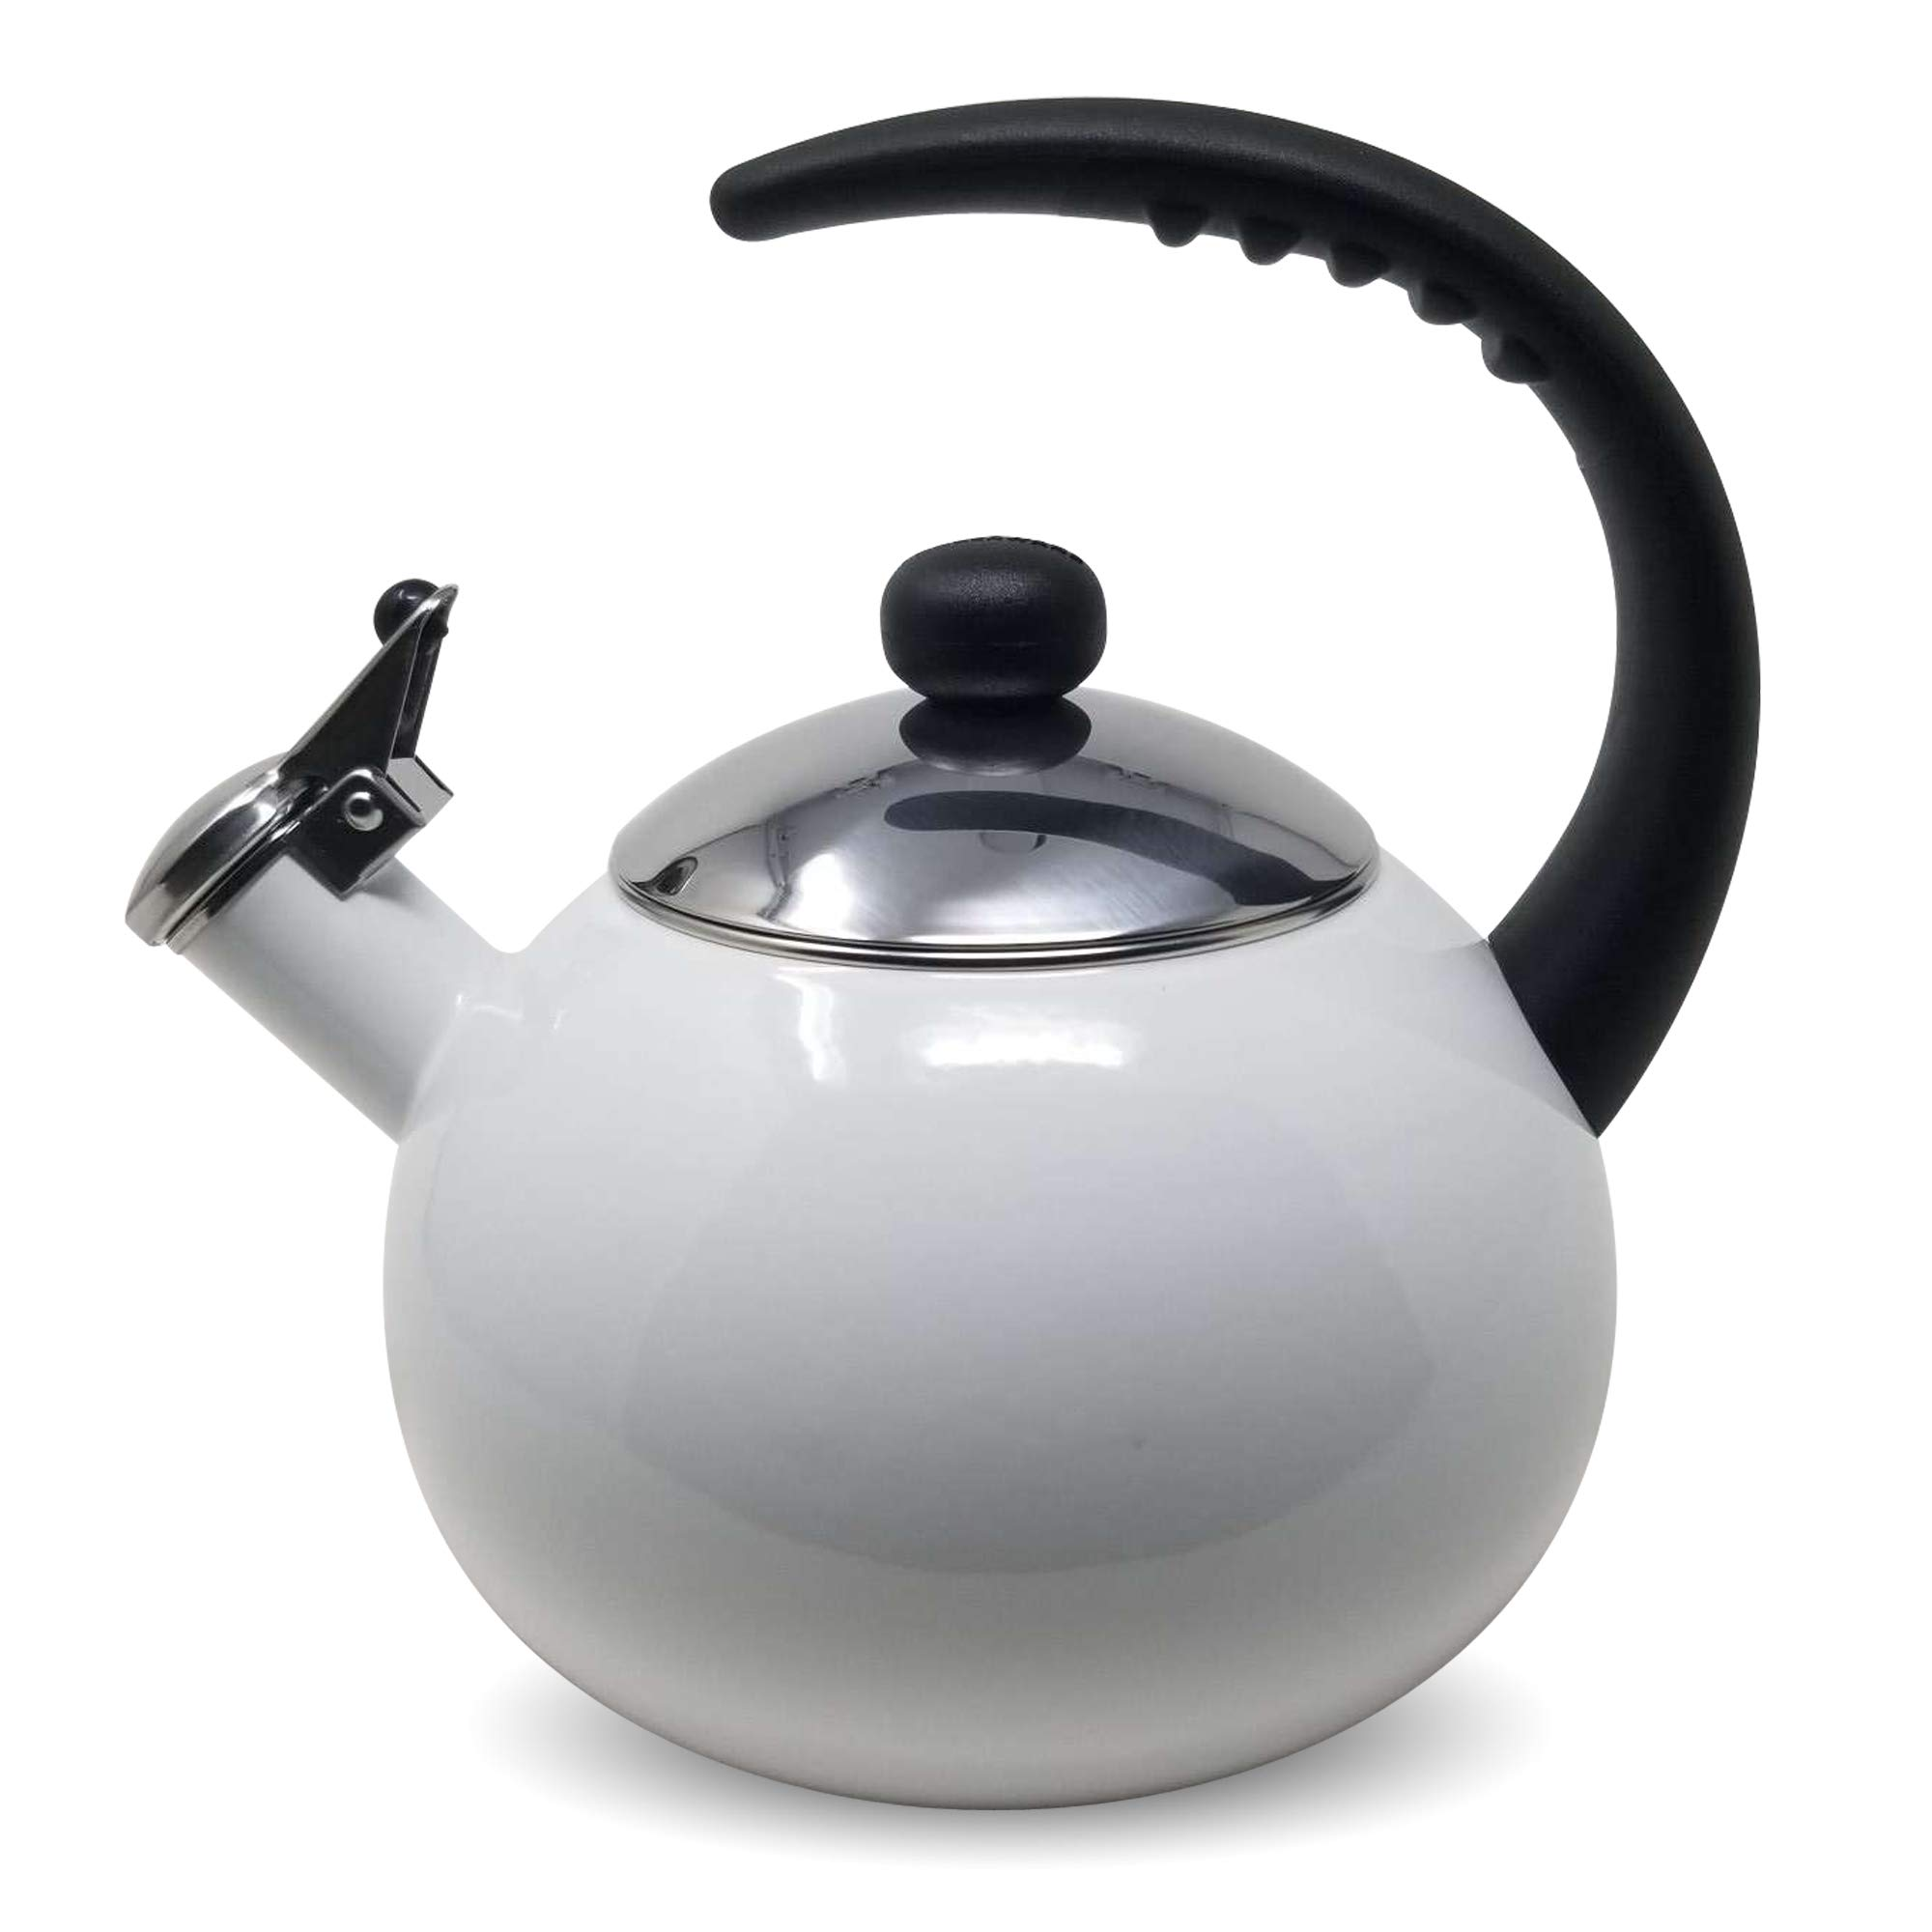 Farberware Luna White Porcelain Enameled Food Grade 18/8 Stainless Steel Soft Whistle Anti- Hot and Anti-Rust TEA KETTLE with Soft Grip Handle Flip Up Spout Heavy Gauge STOVETOP POT 2 QT. by Alfay (Image #1)